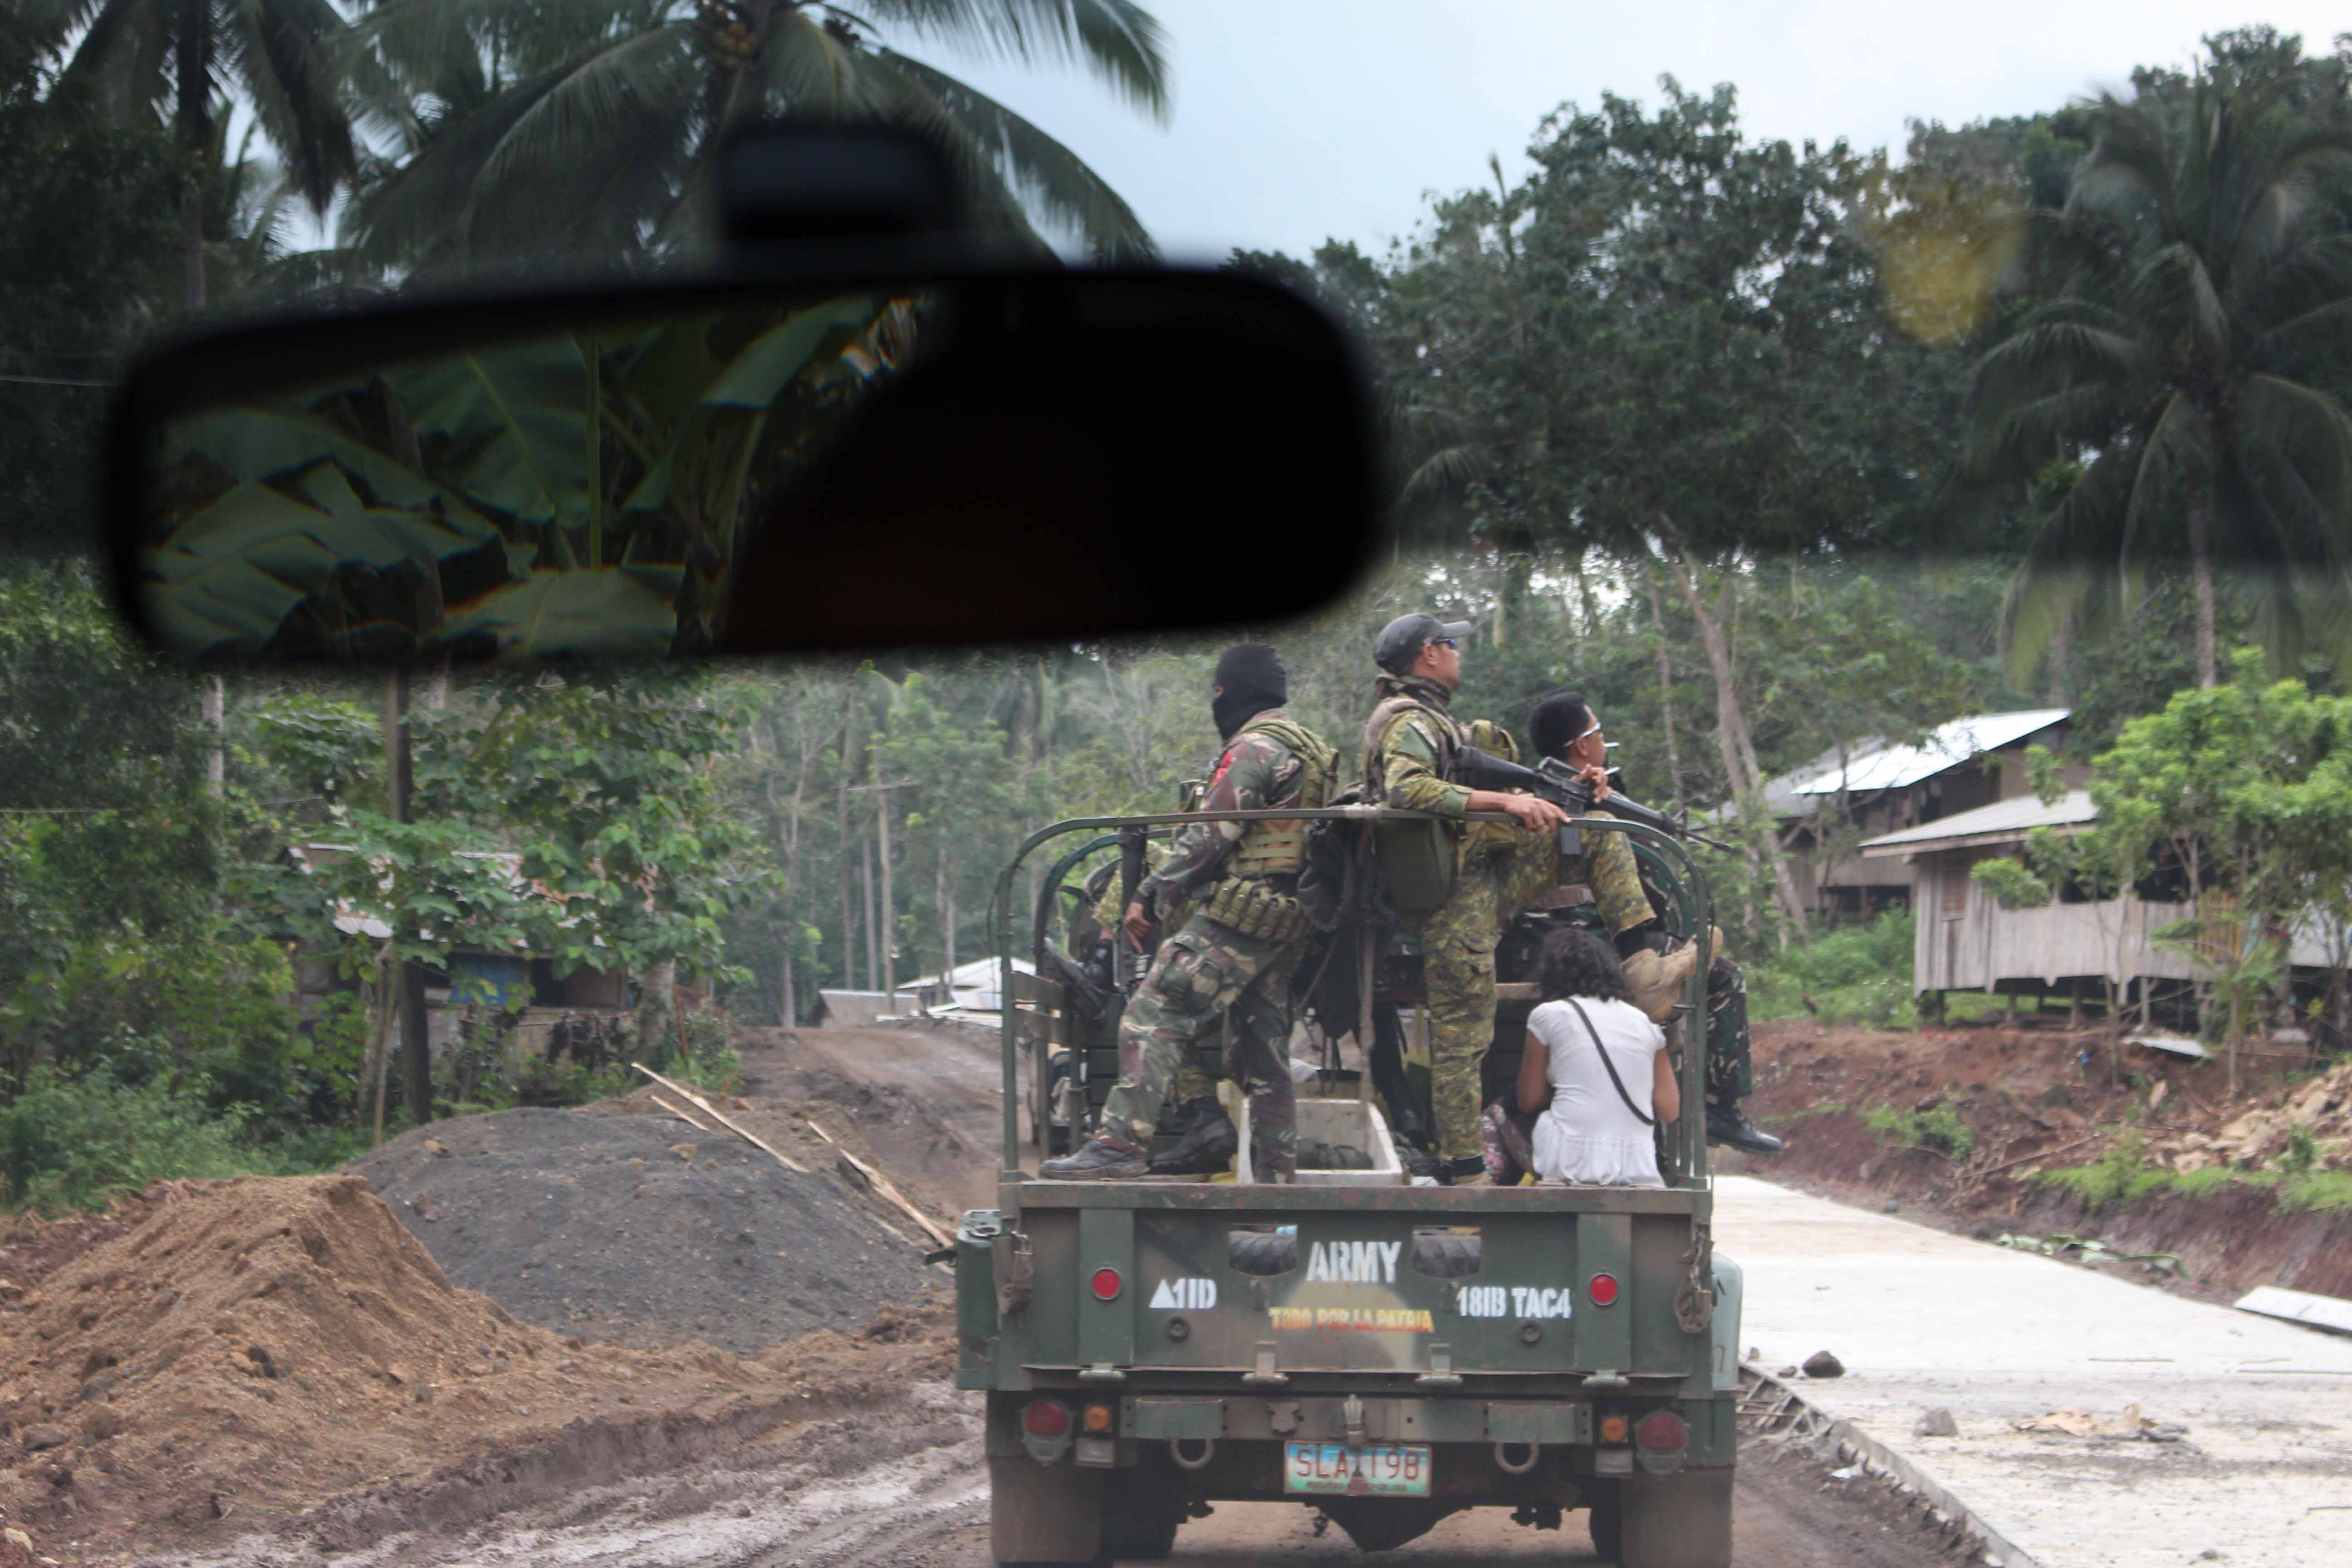 Ambush route: soldiers scan for IEDs and gunmen on the drive through Tipo Tipo